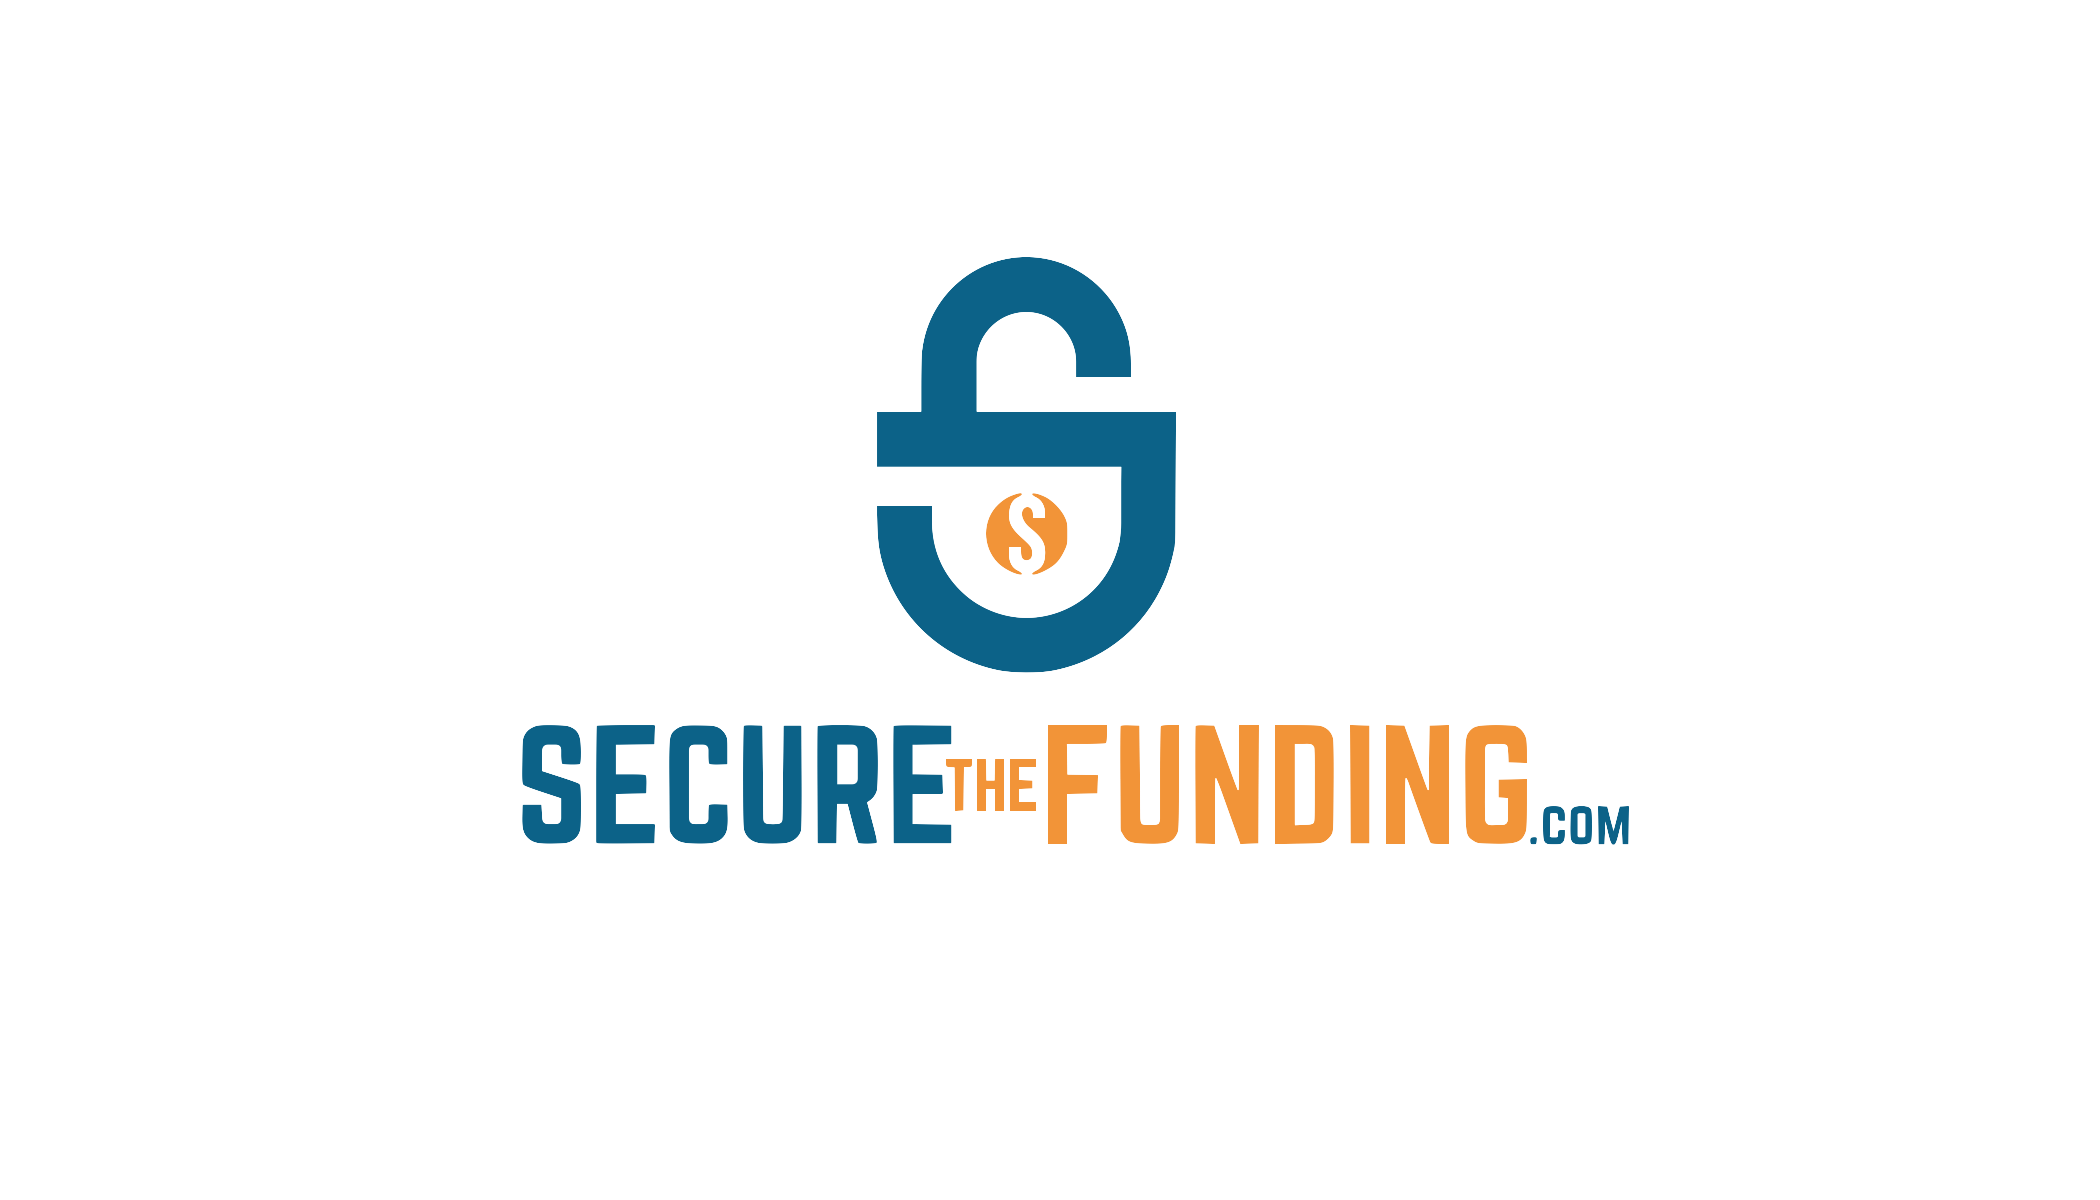 Secure The Funding logo